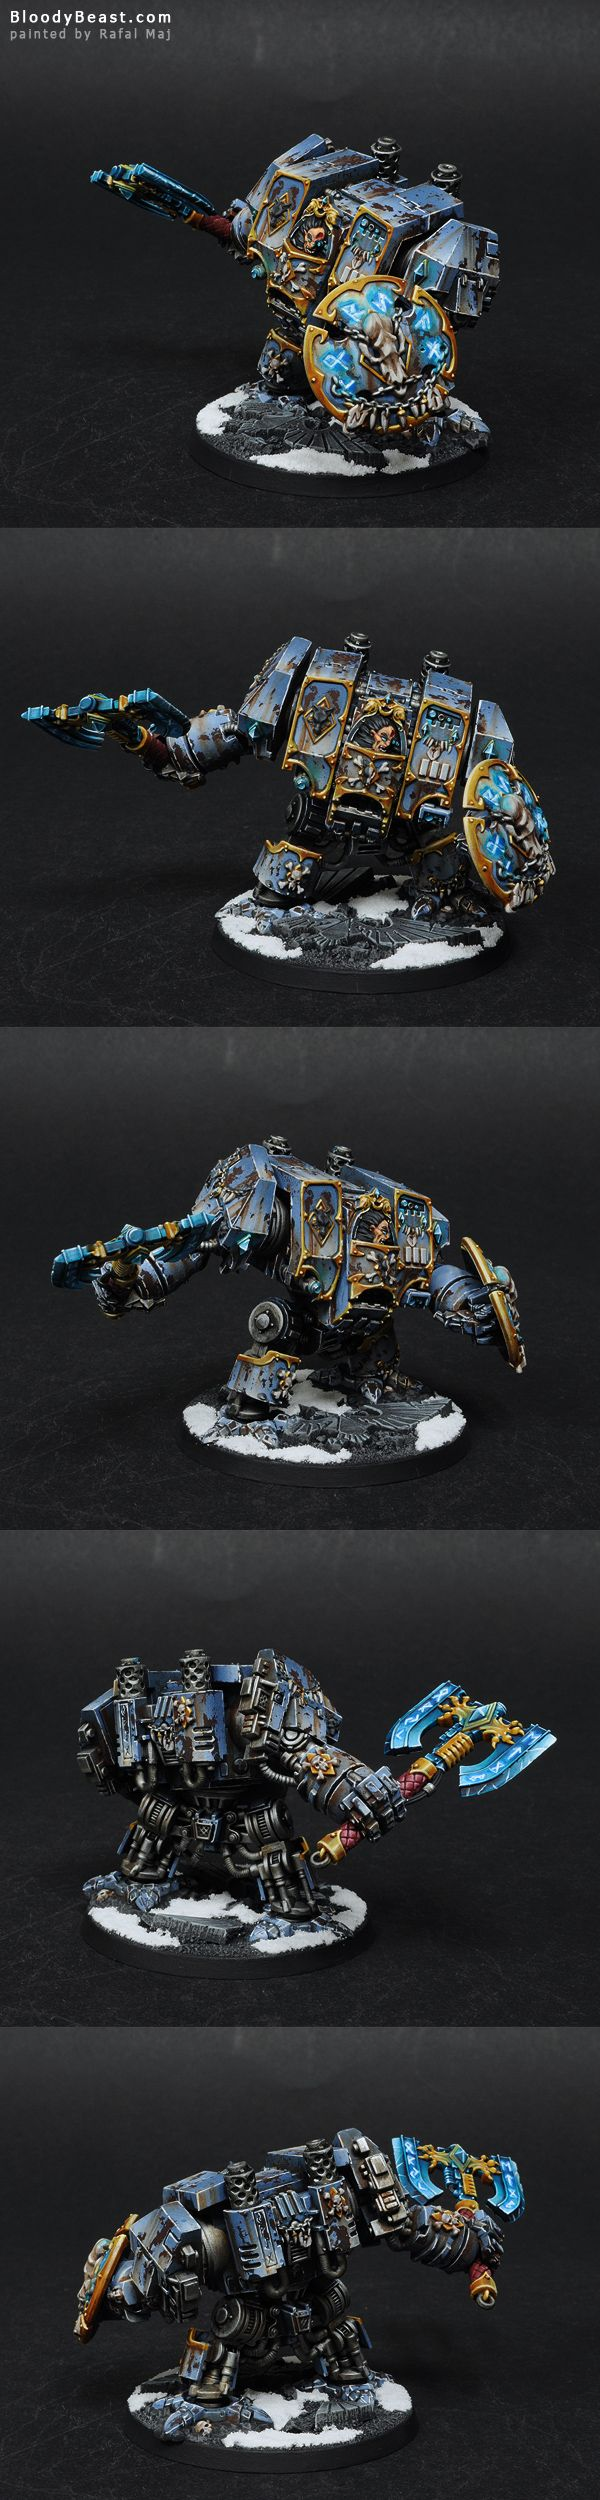 I've painted some new Space Wolves. This mini is just awesome. I love the idea of dreadnought with great axe and shield. More Space Wolves soon. Pomalowałem trochę nowych Kosmicznych Wilków. Ta fig...